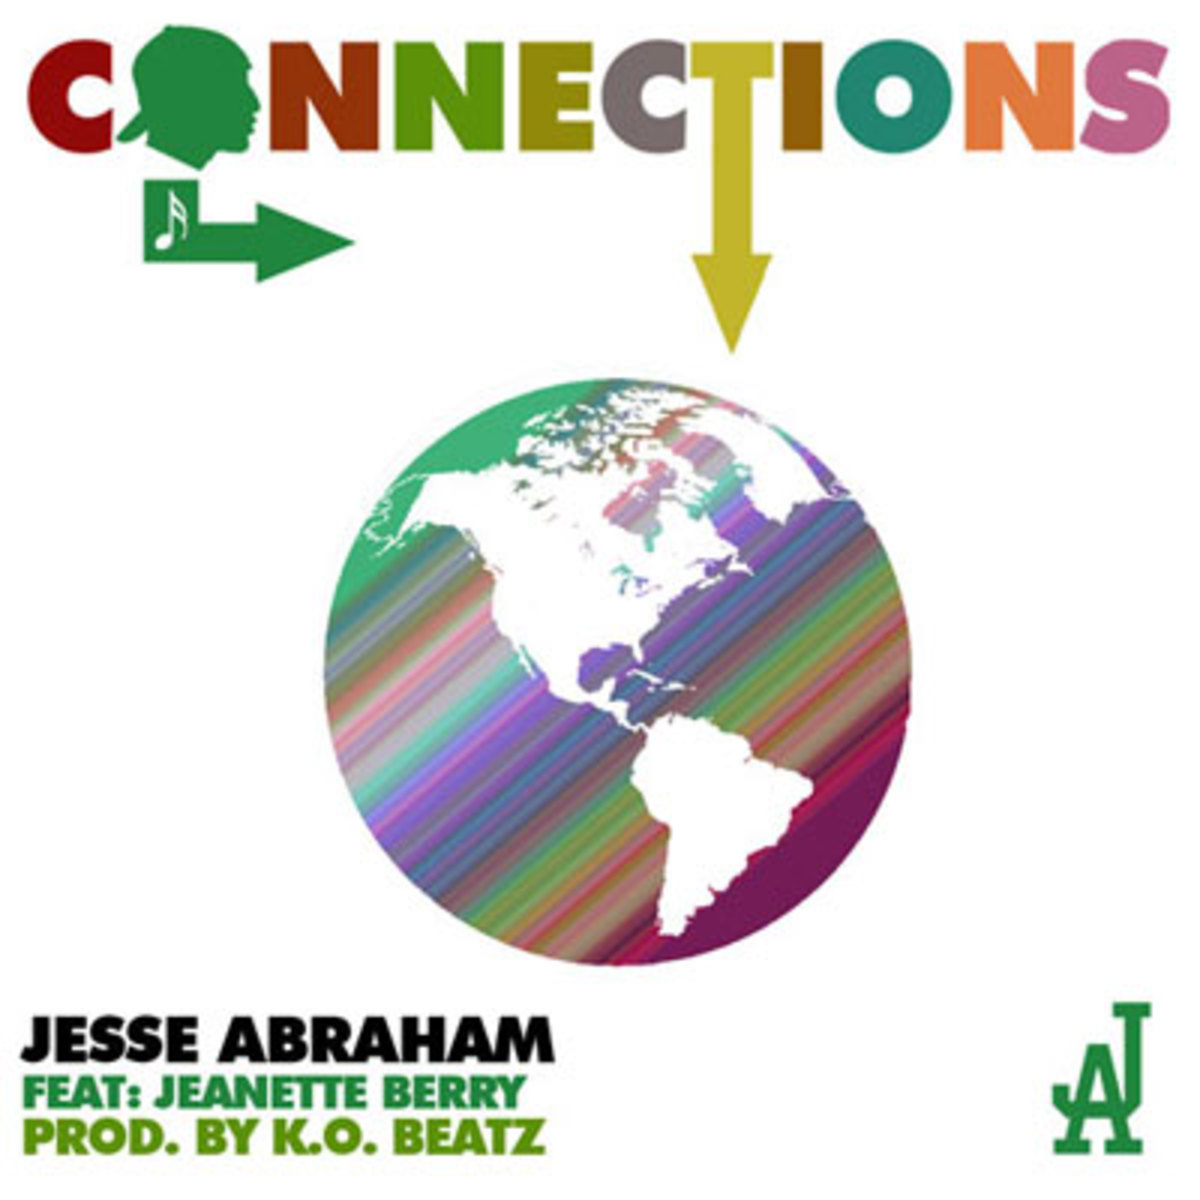 jesseabraham-connections.jpg